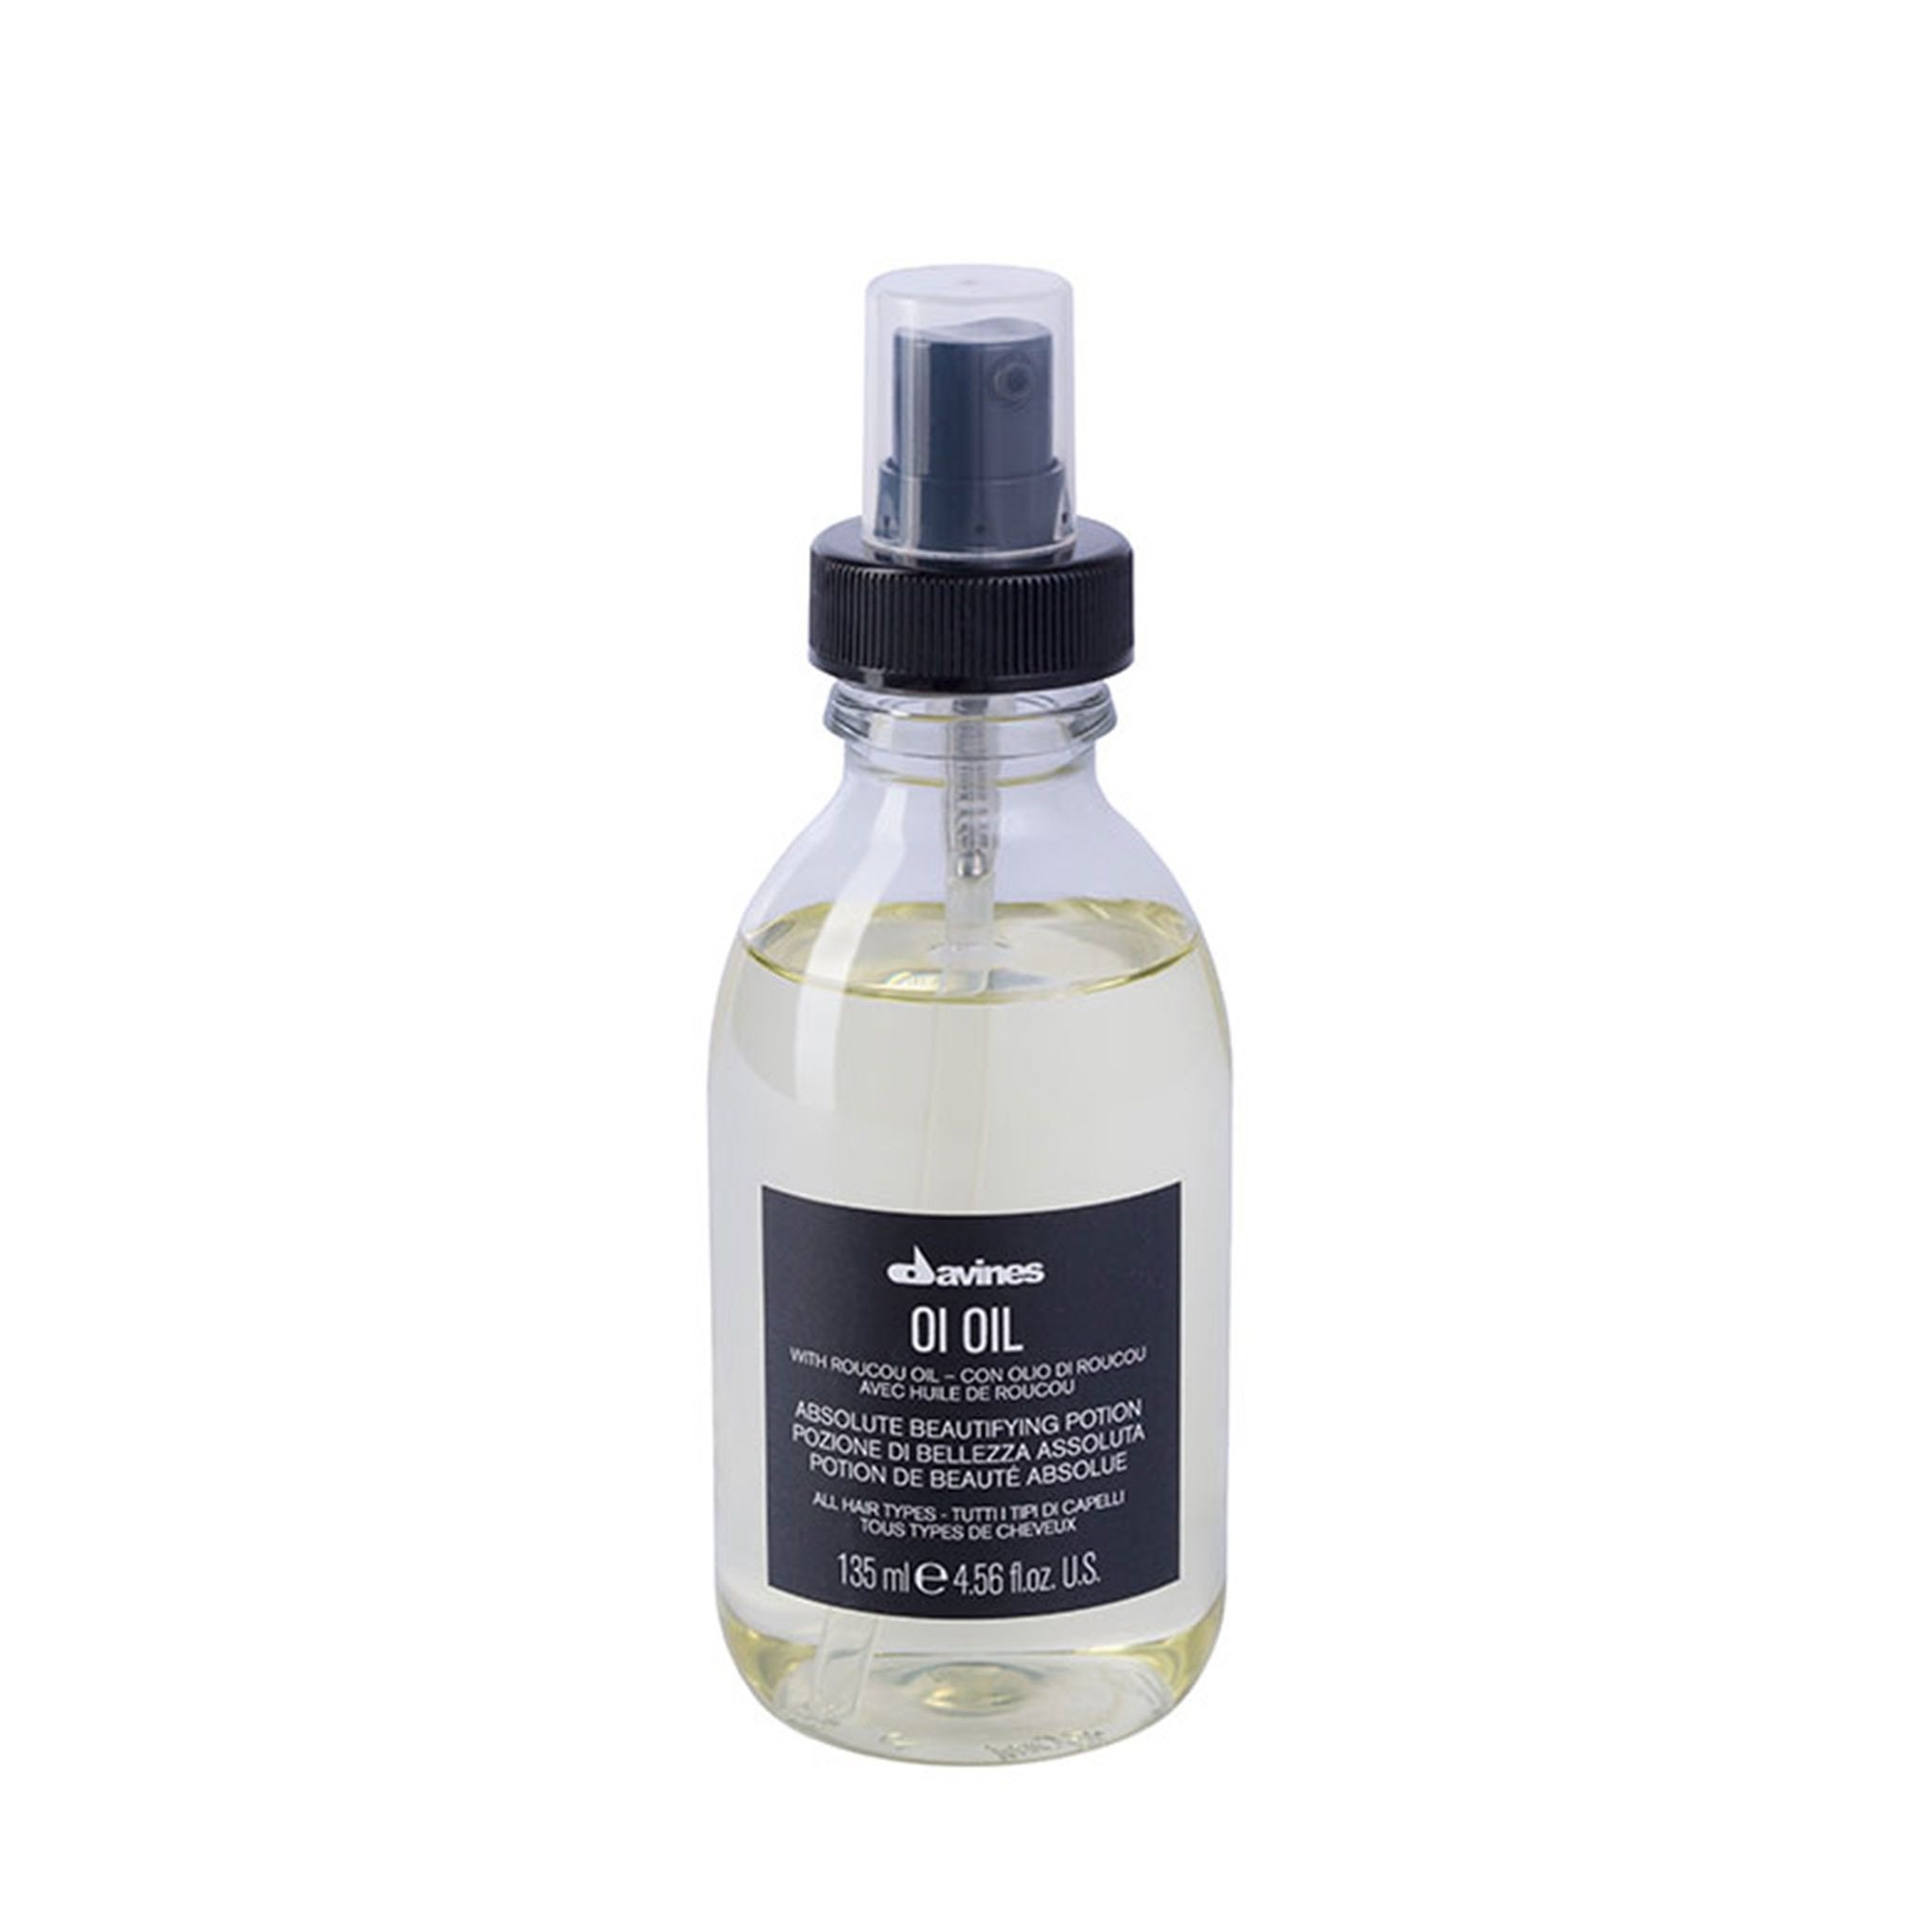 Davines OI Absolute Beautifying Potion With Roucou Oil Масло для абсолютной красоты волос (135 ml) 76000